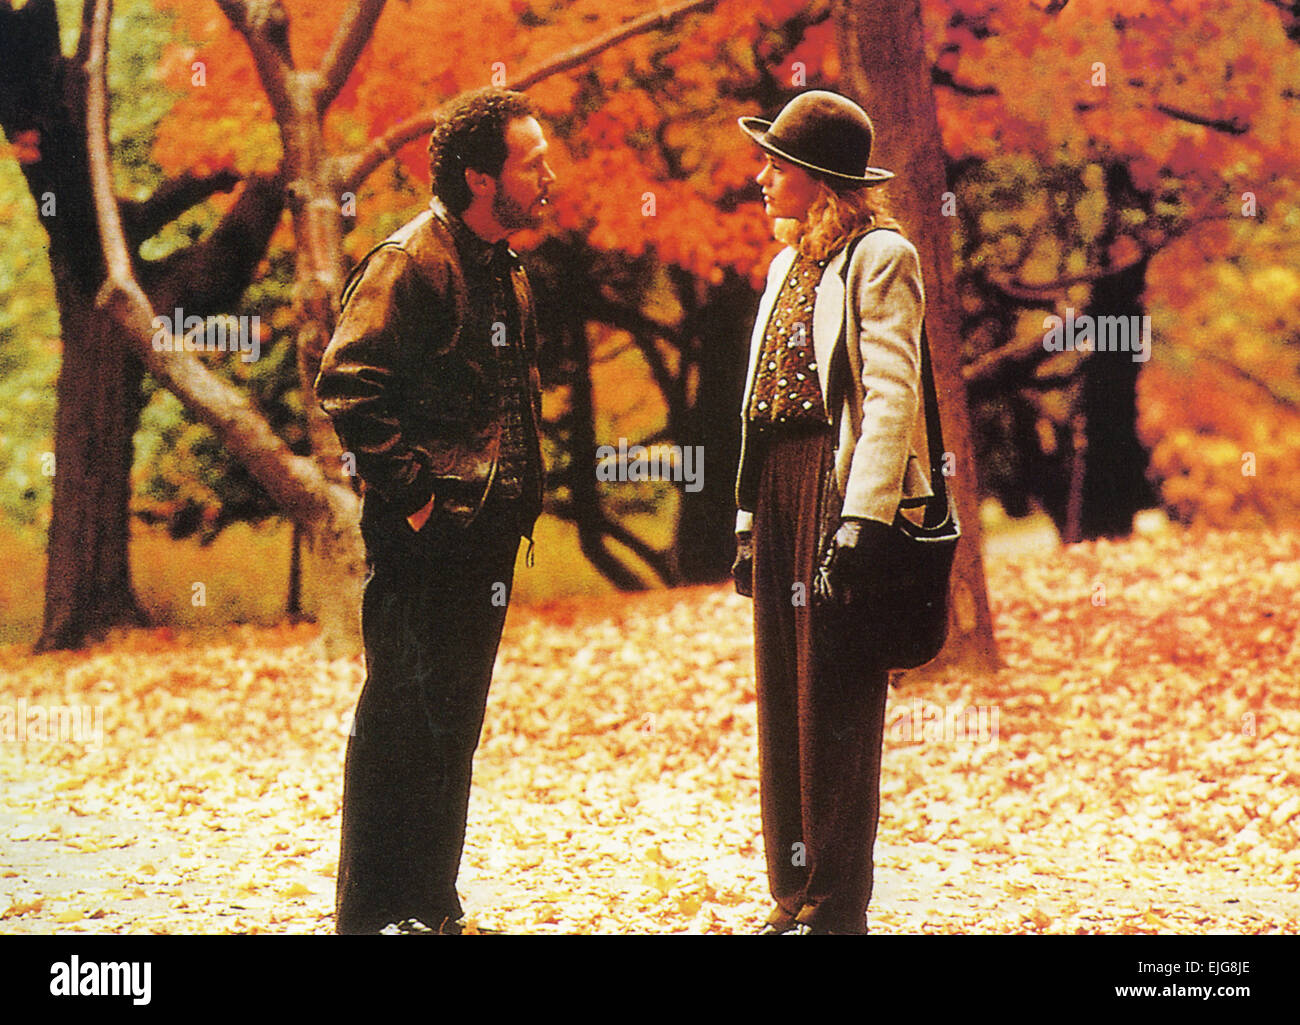 Quand Harry rencontre Sally 1989 Castle Rock film avec Meg Ryan et Billy Crystal Photo Stock